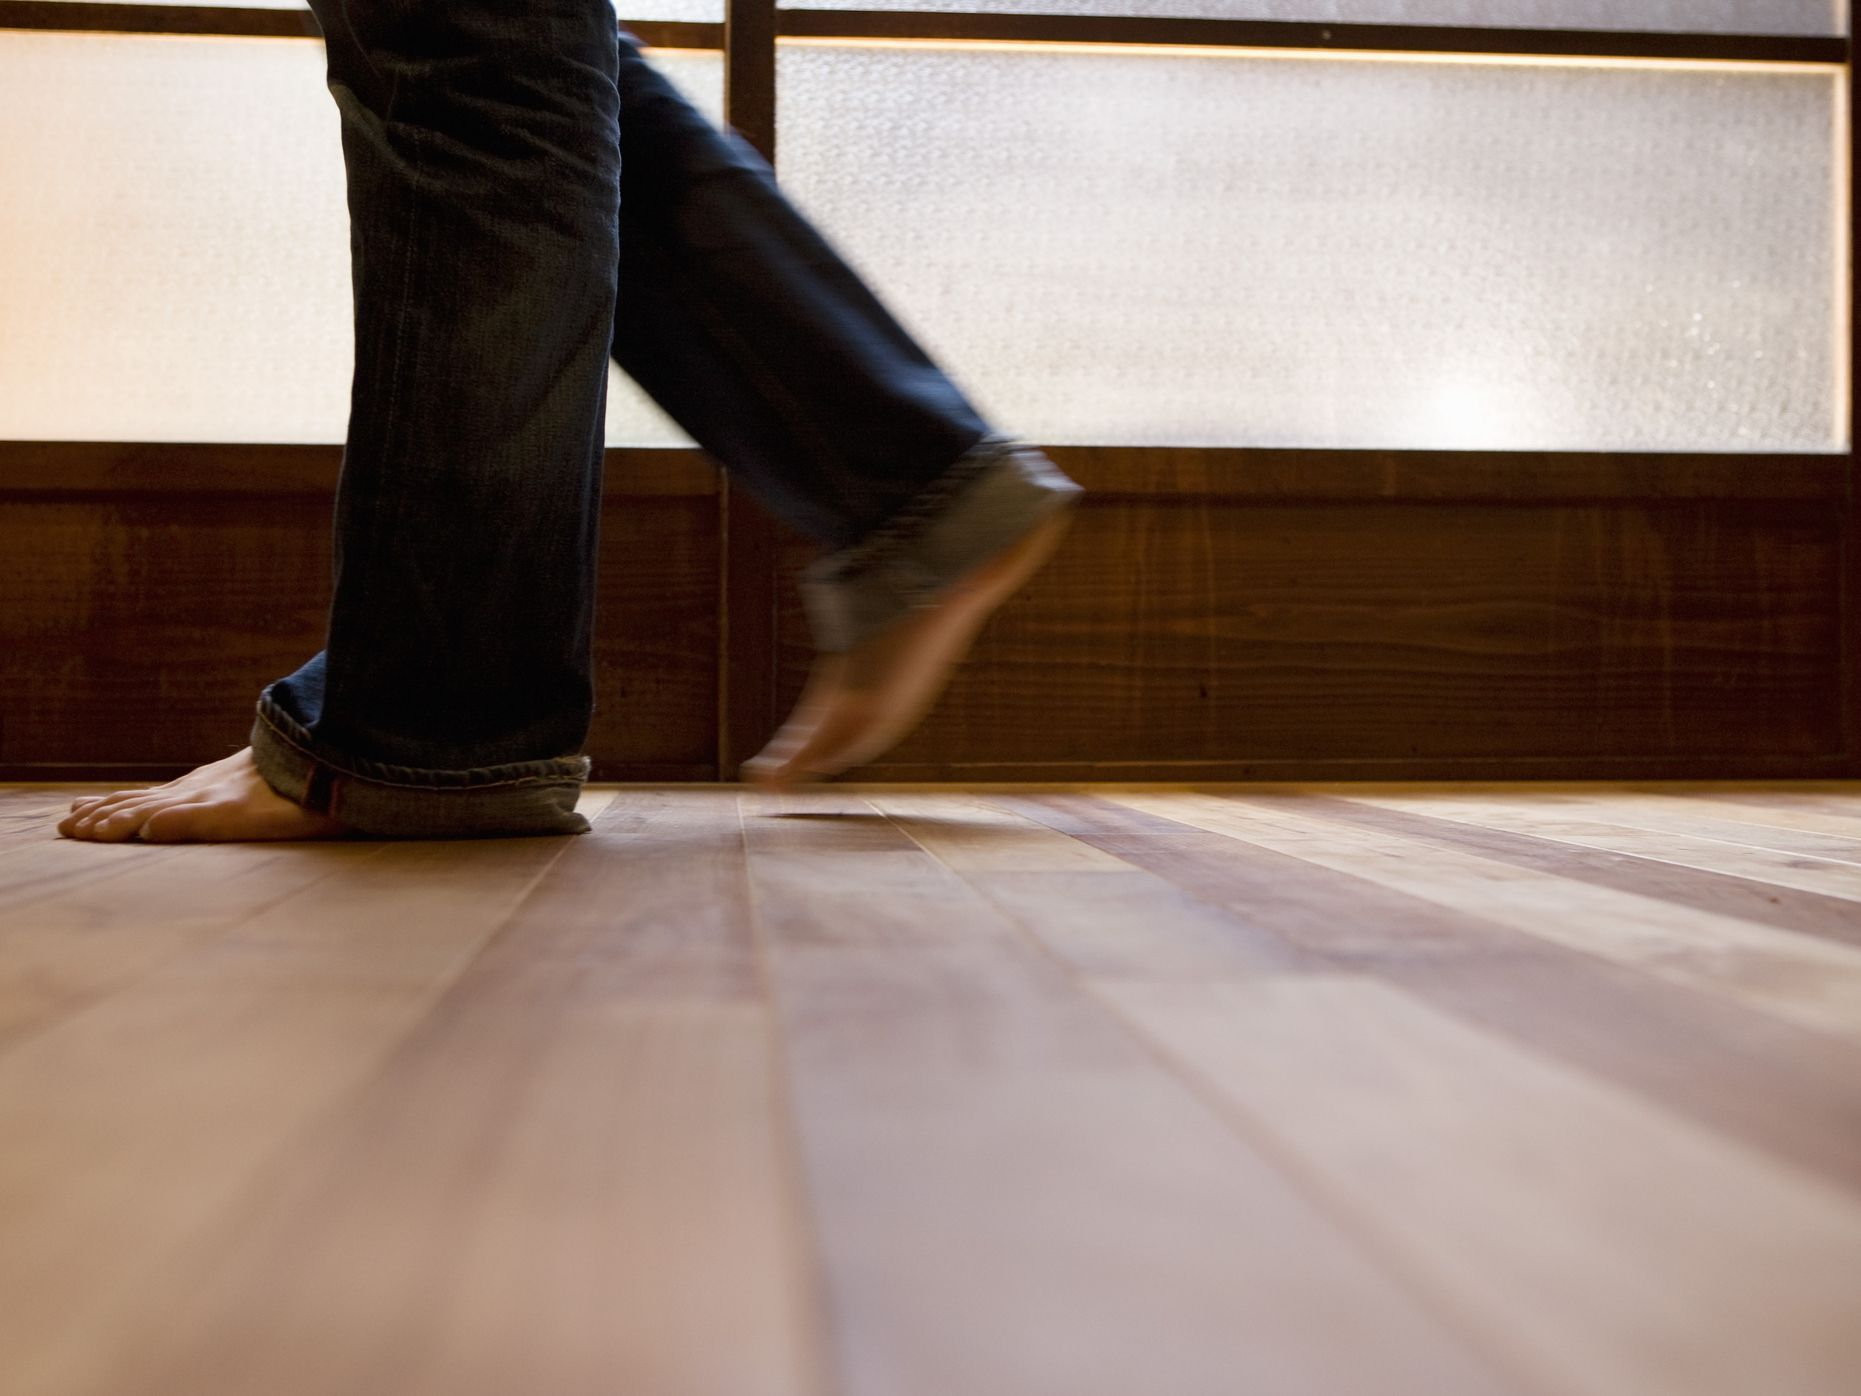 How To Fix Squeaky Floors In Your Home, Laminate Flooring Stop Squeaking